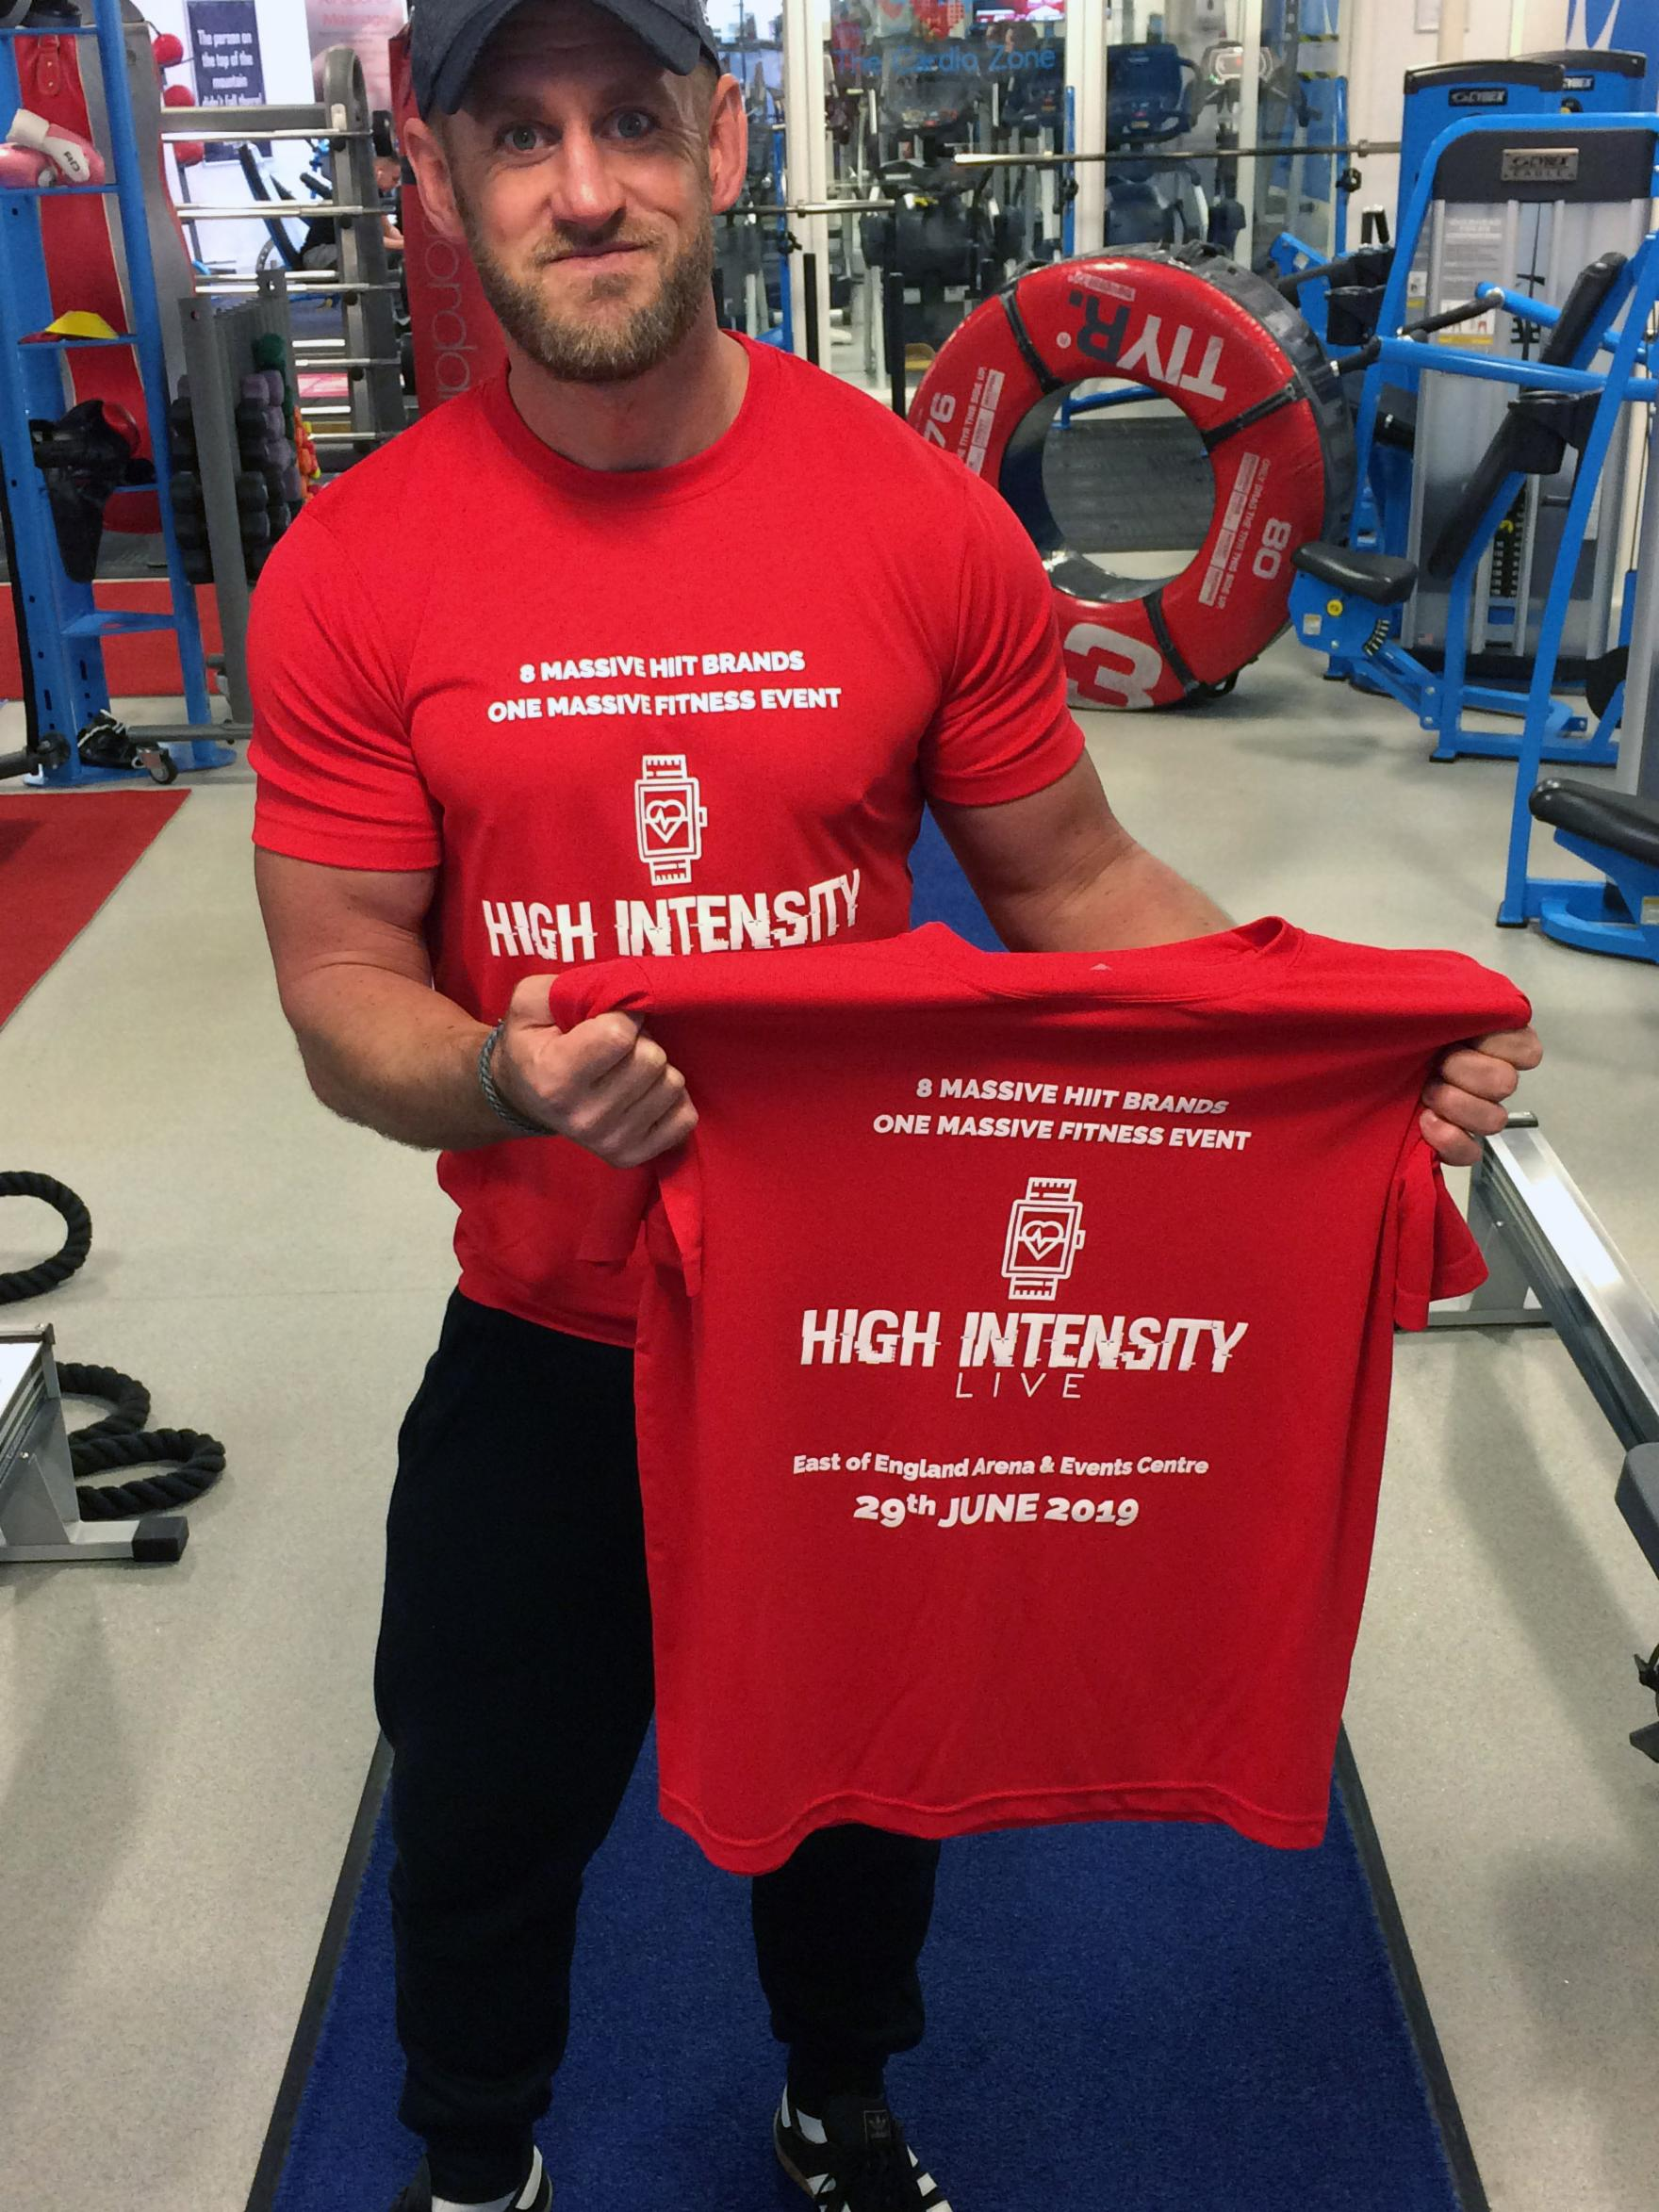 East of England Arena welcomes brand-new fitness event.